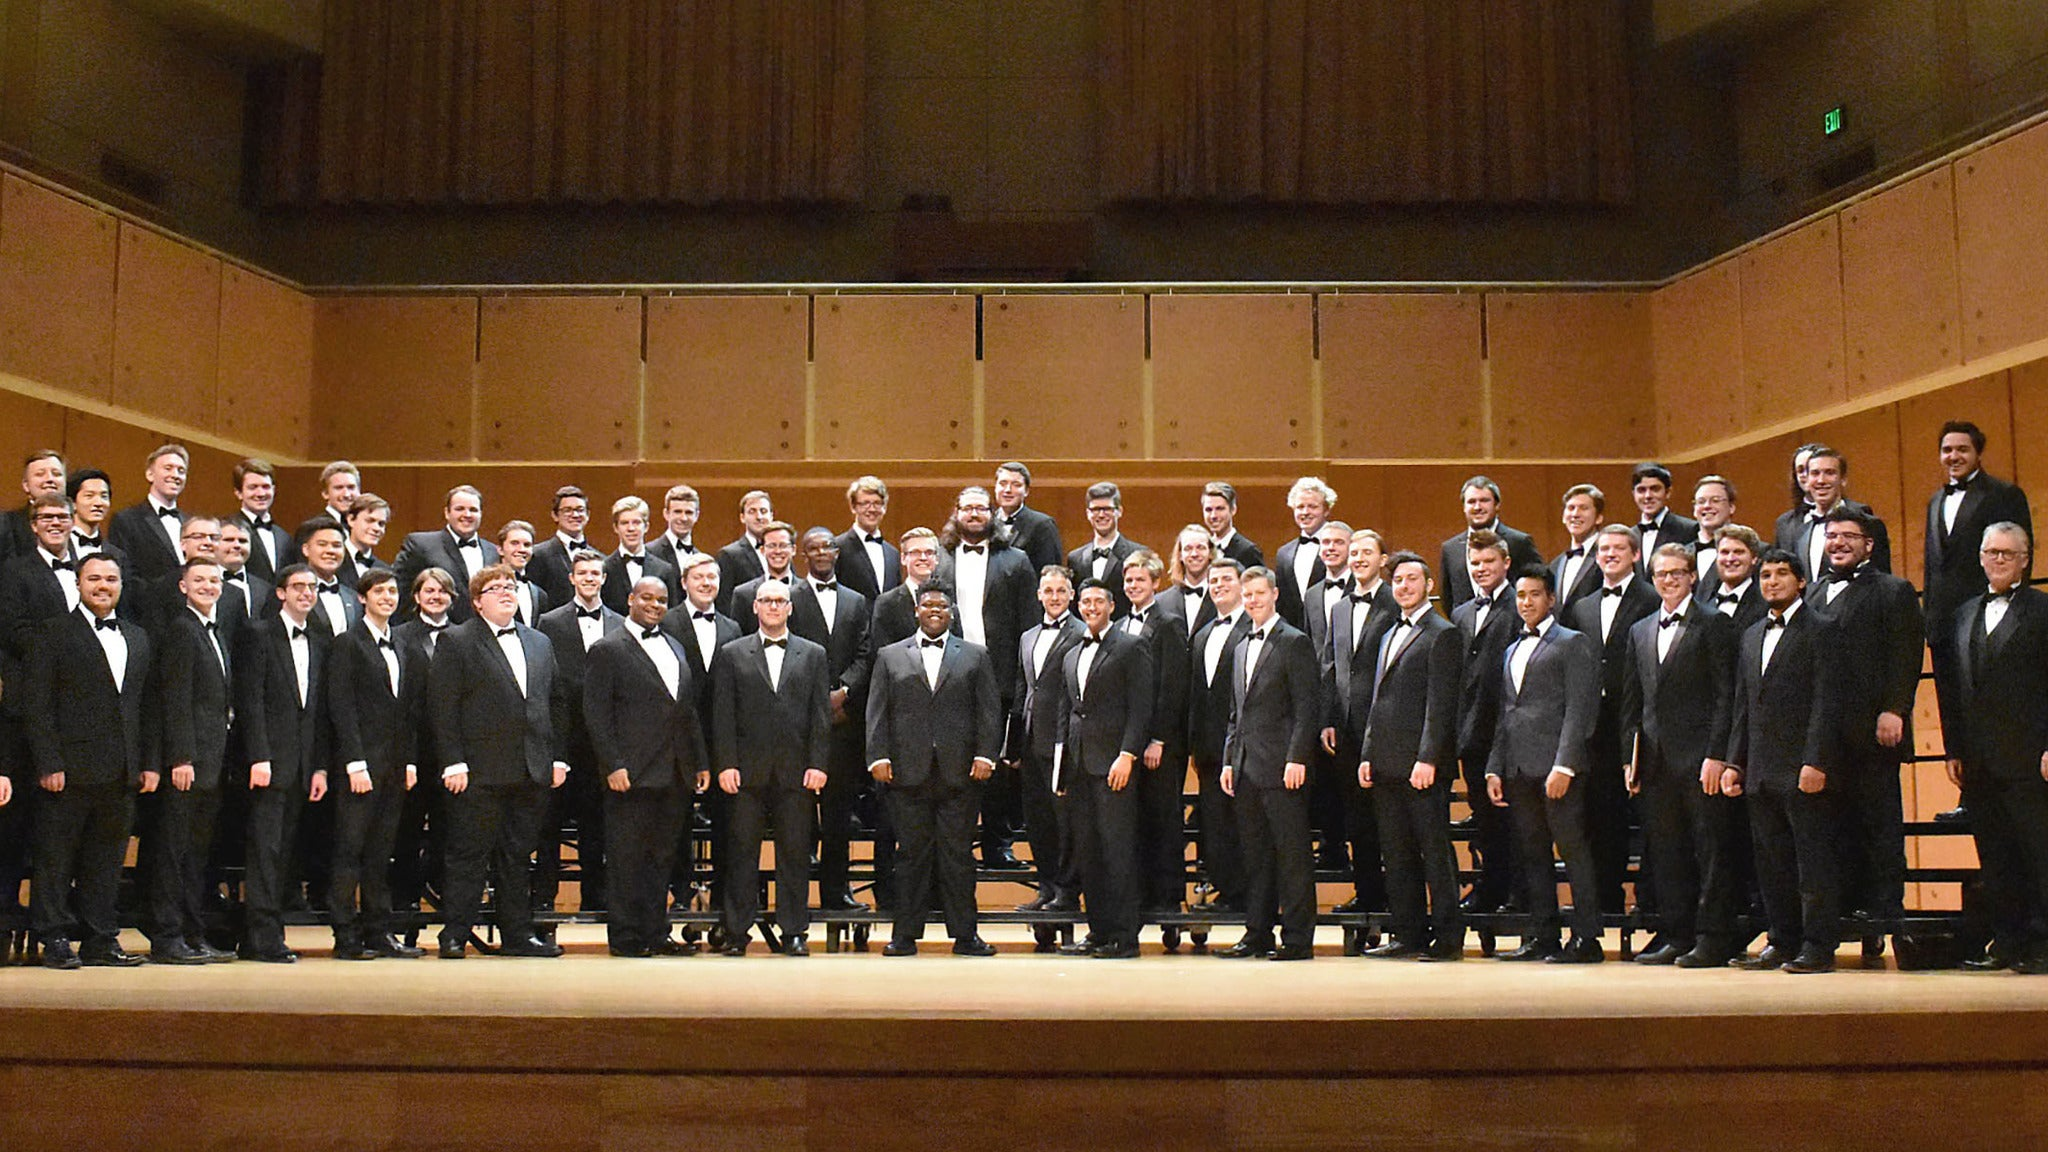 Men's Glee, Women's Choir, & Belle Voix